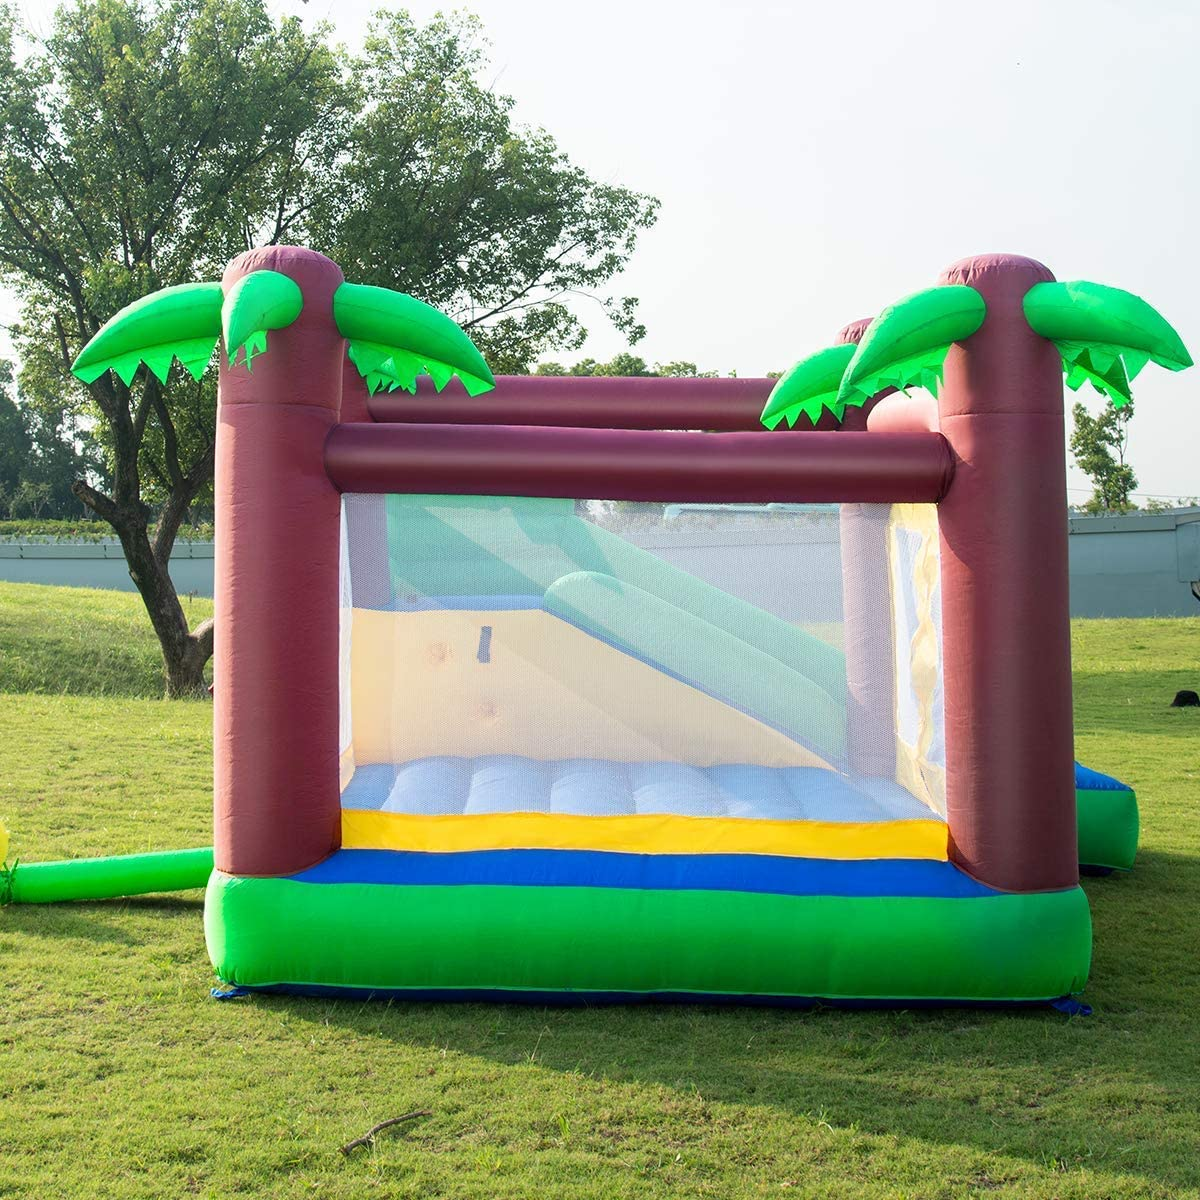 Amazon.com: costzon inflable Jungle rebote casa Jump y ...